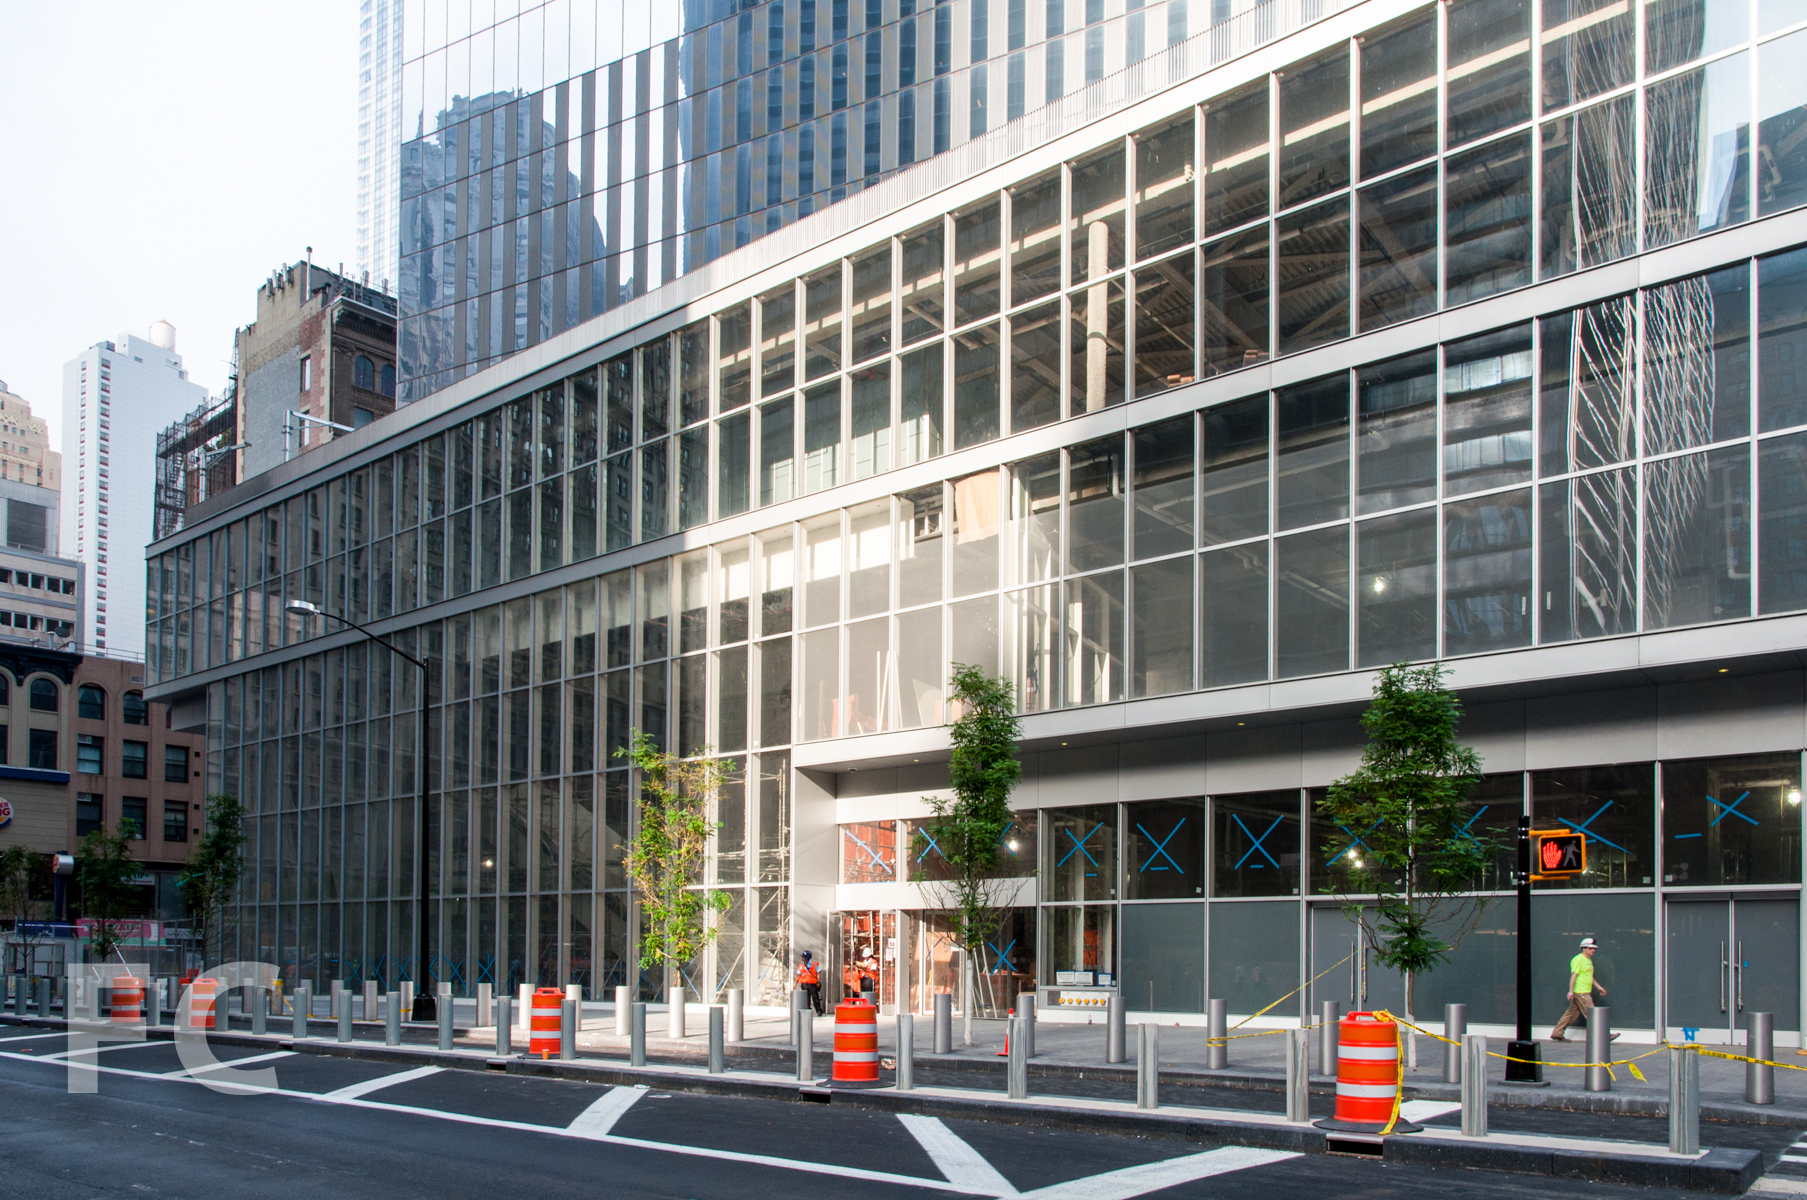 The retail podium of 4 WTC from Church Street.